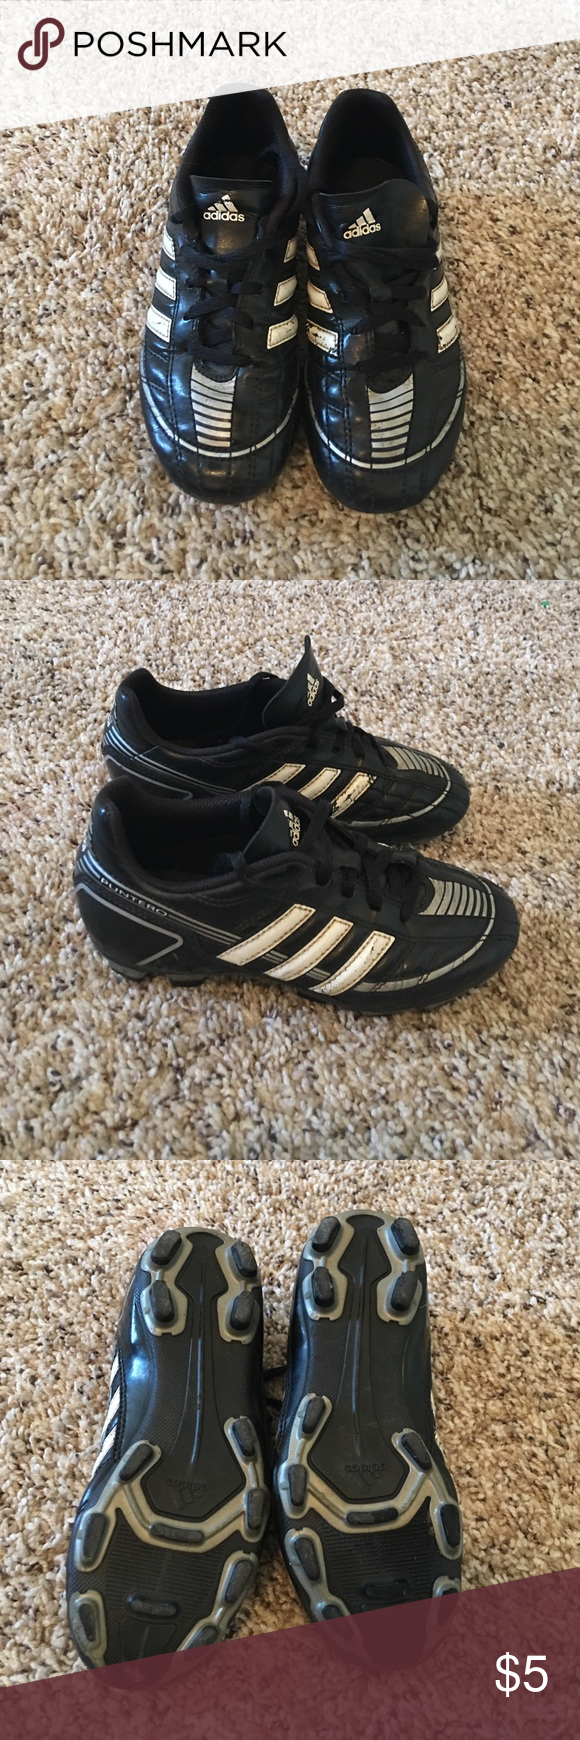 Adidas kids soccer cleats. Size US 1 Kids soccer cleats size US 1 UK 13  1 2. Good condition 3f438f1f588